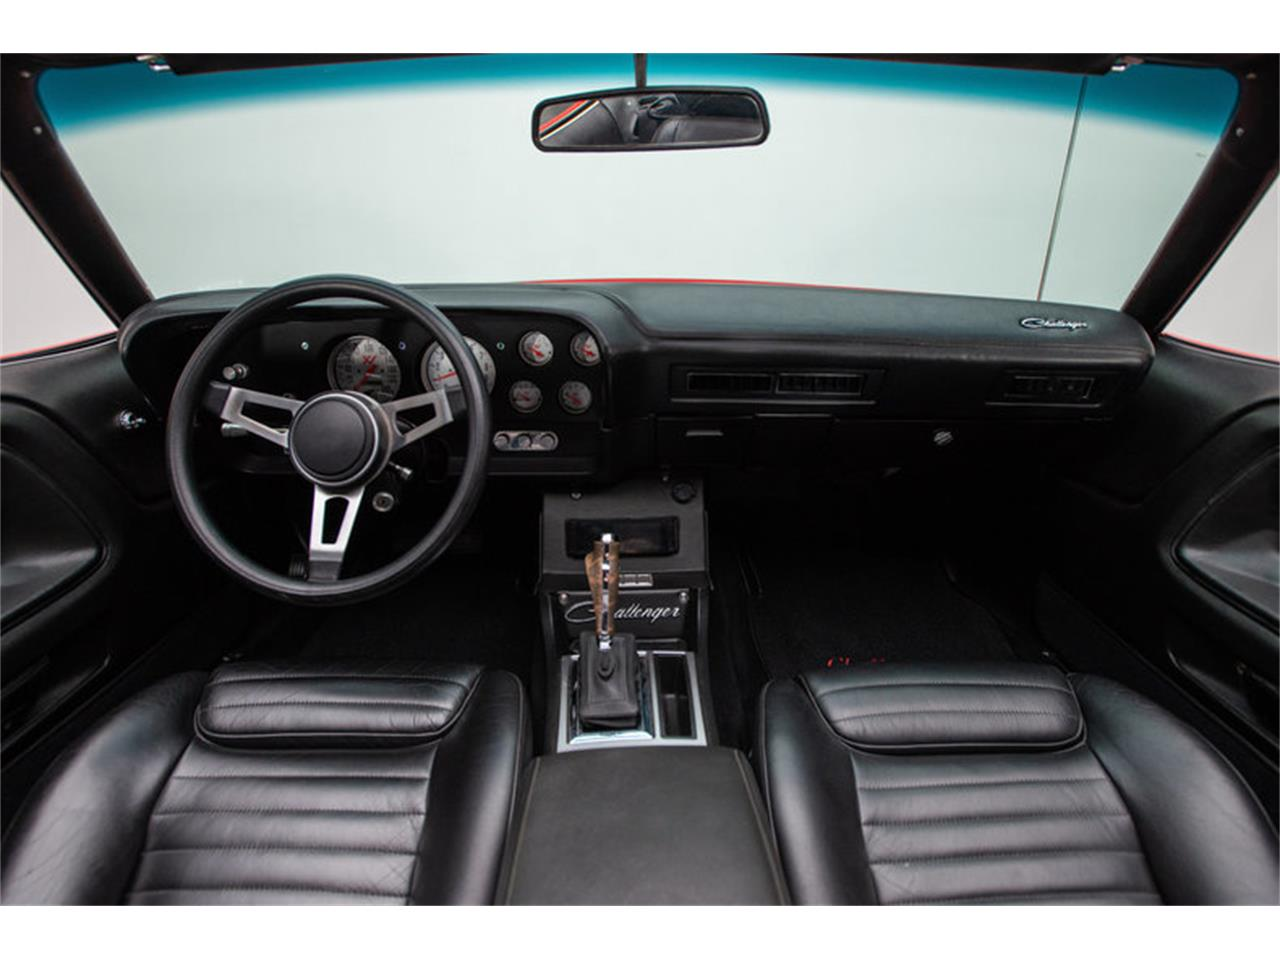 Large Picture of Classic 1970 Dodge Challenger R/T located in North Carolina - $89,900.00 - F9K4